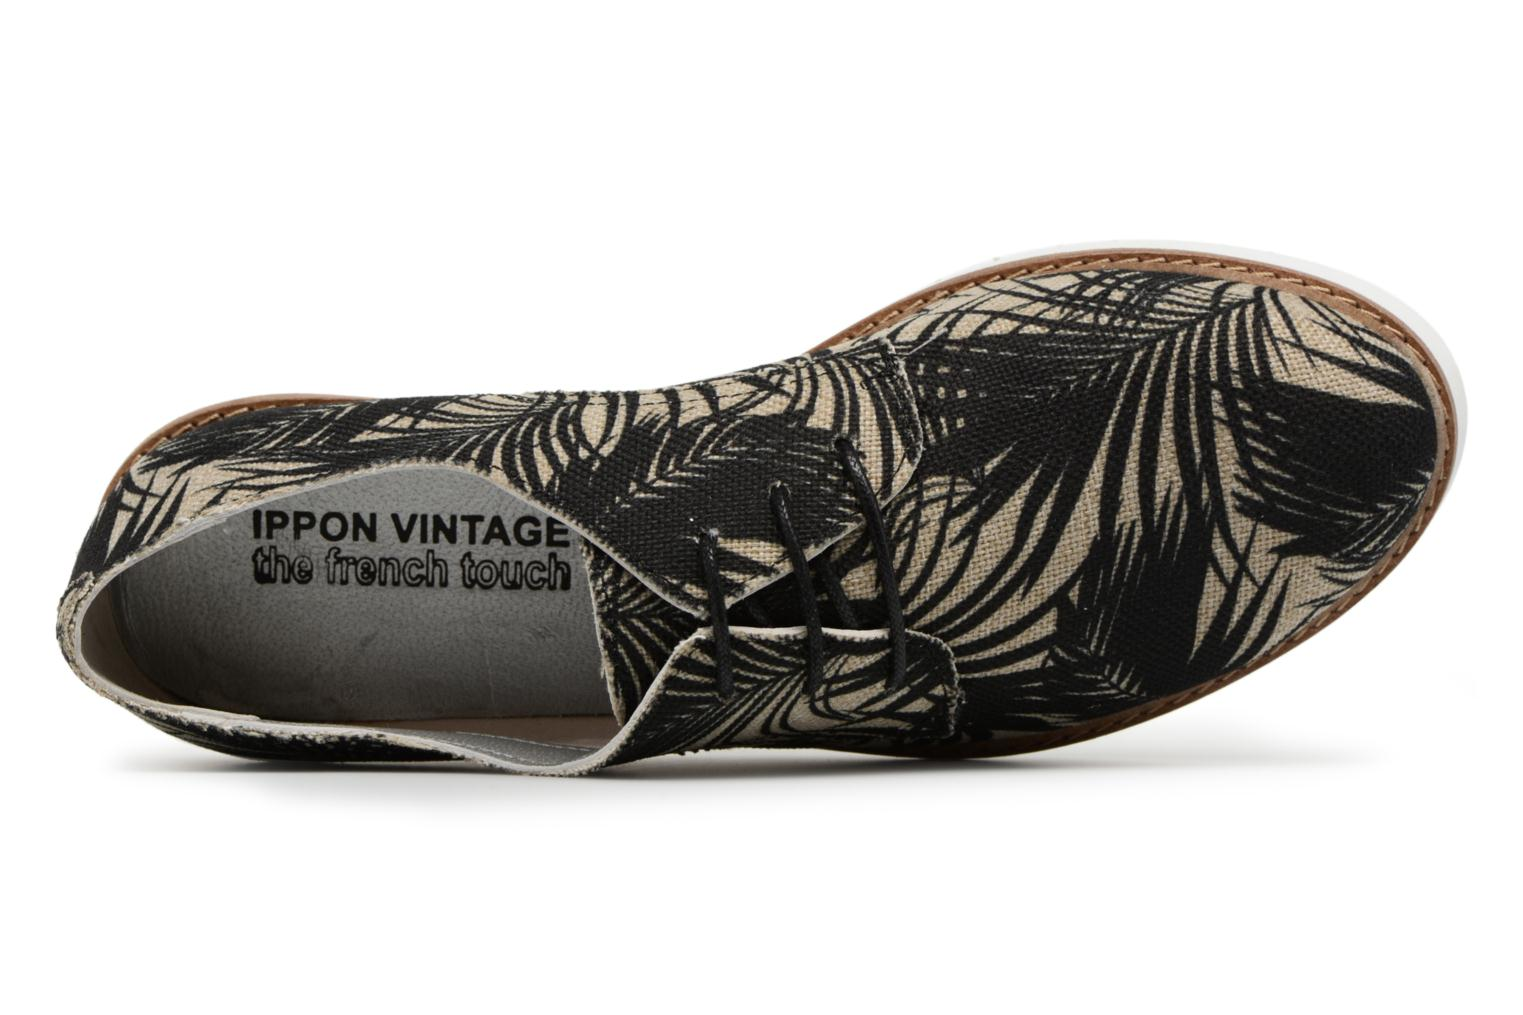 Lace-up shoes Ippon Vintage James tropic Multicolor view from the left